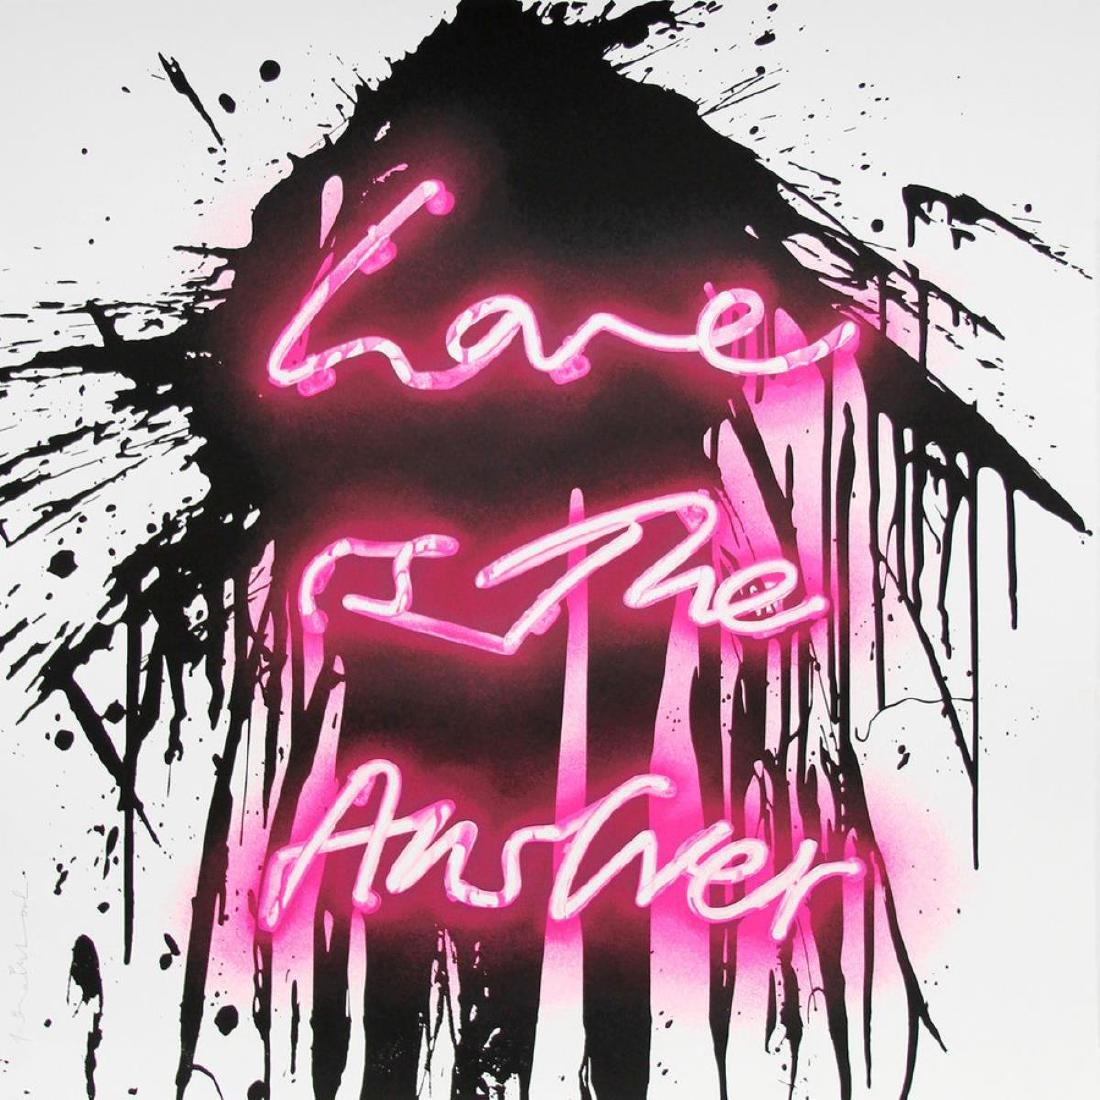 Mr. Brainwash - Love On